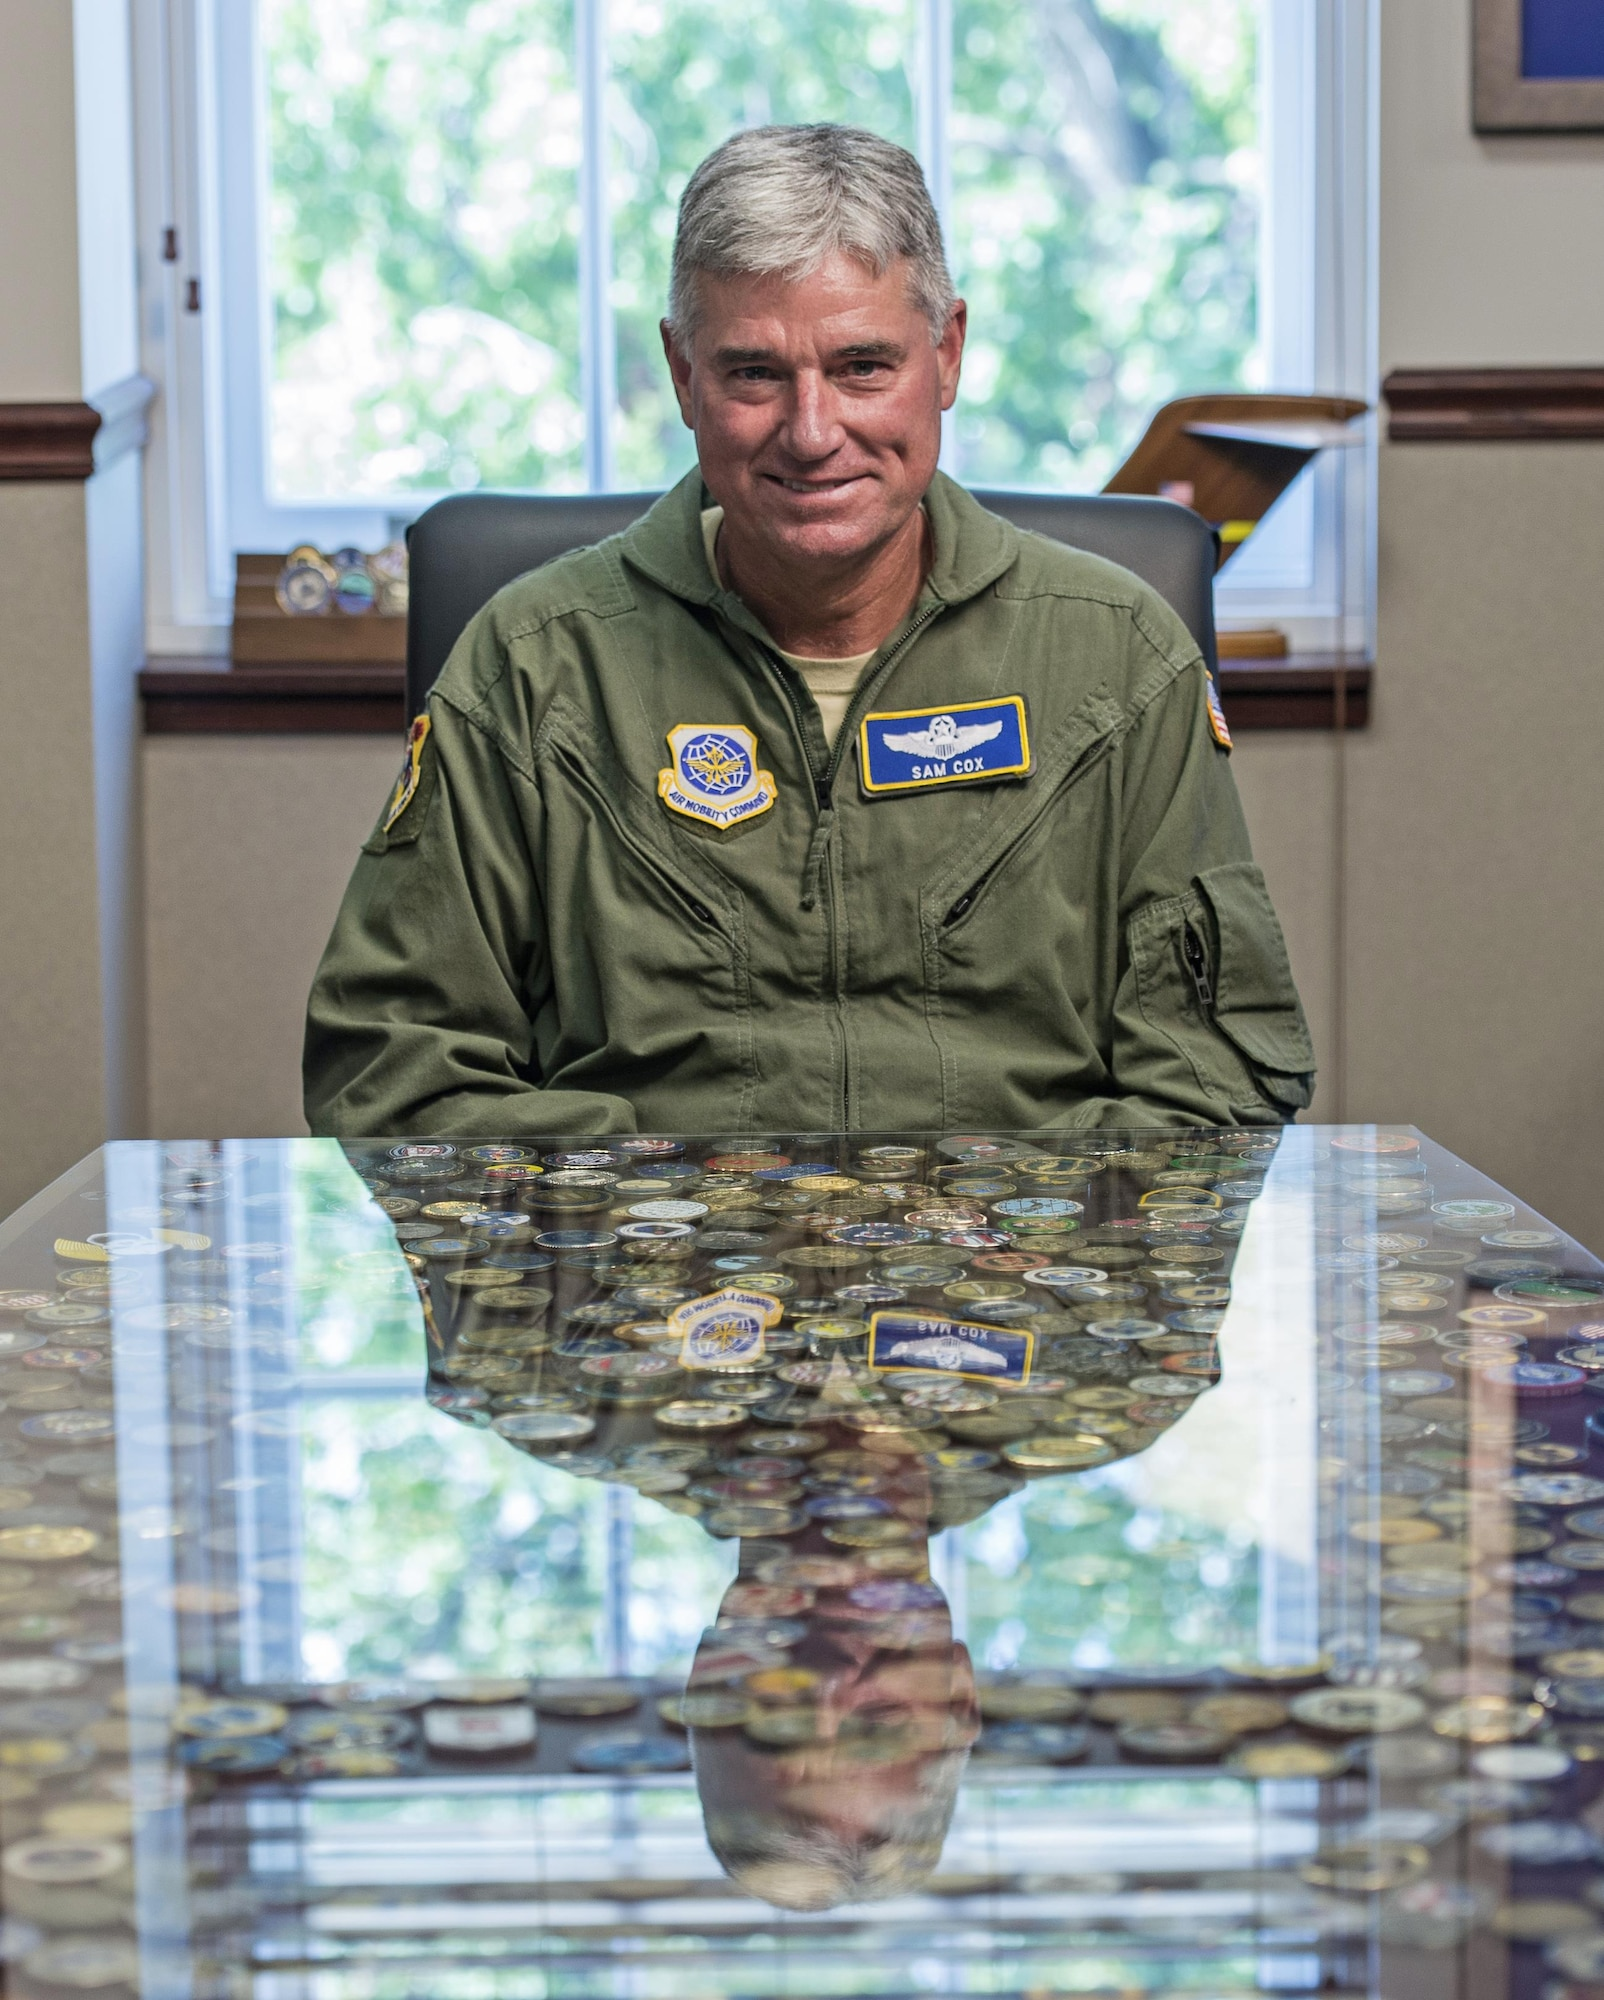 """Lt. Gen. Sam Cox, the 18th Air Force commander, was invited to sit on the Army Airborne Board, a newly formed group that oversees Army airborne operations. Ongoing work by the Air Force and Army has filled training schedules by streamlining the Joint Airborne/Air Transportability Training program, an online system used by military units to request air support. """"The chute count is higher now than it was a year ago, and we're going to continue to build on that,"""" Cox said. (U.S. Air Force photo/Master Sgt. Brian Ferguson)"""